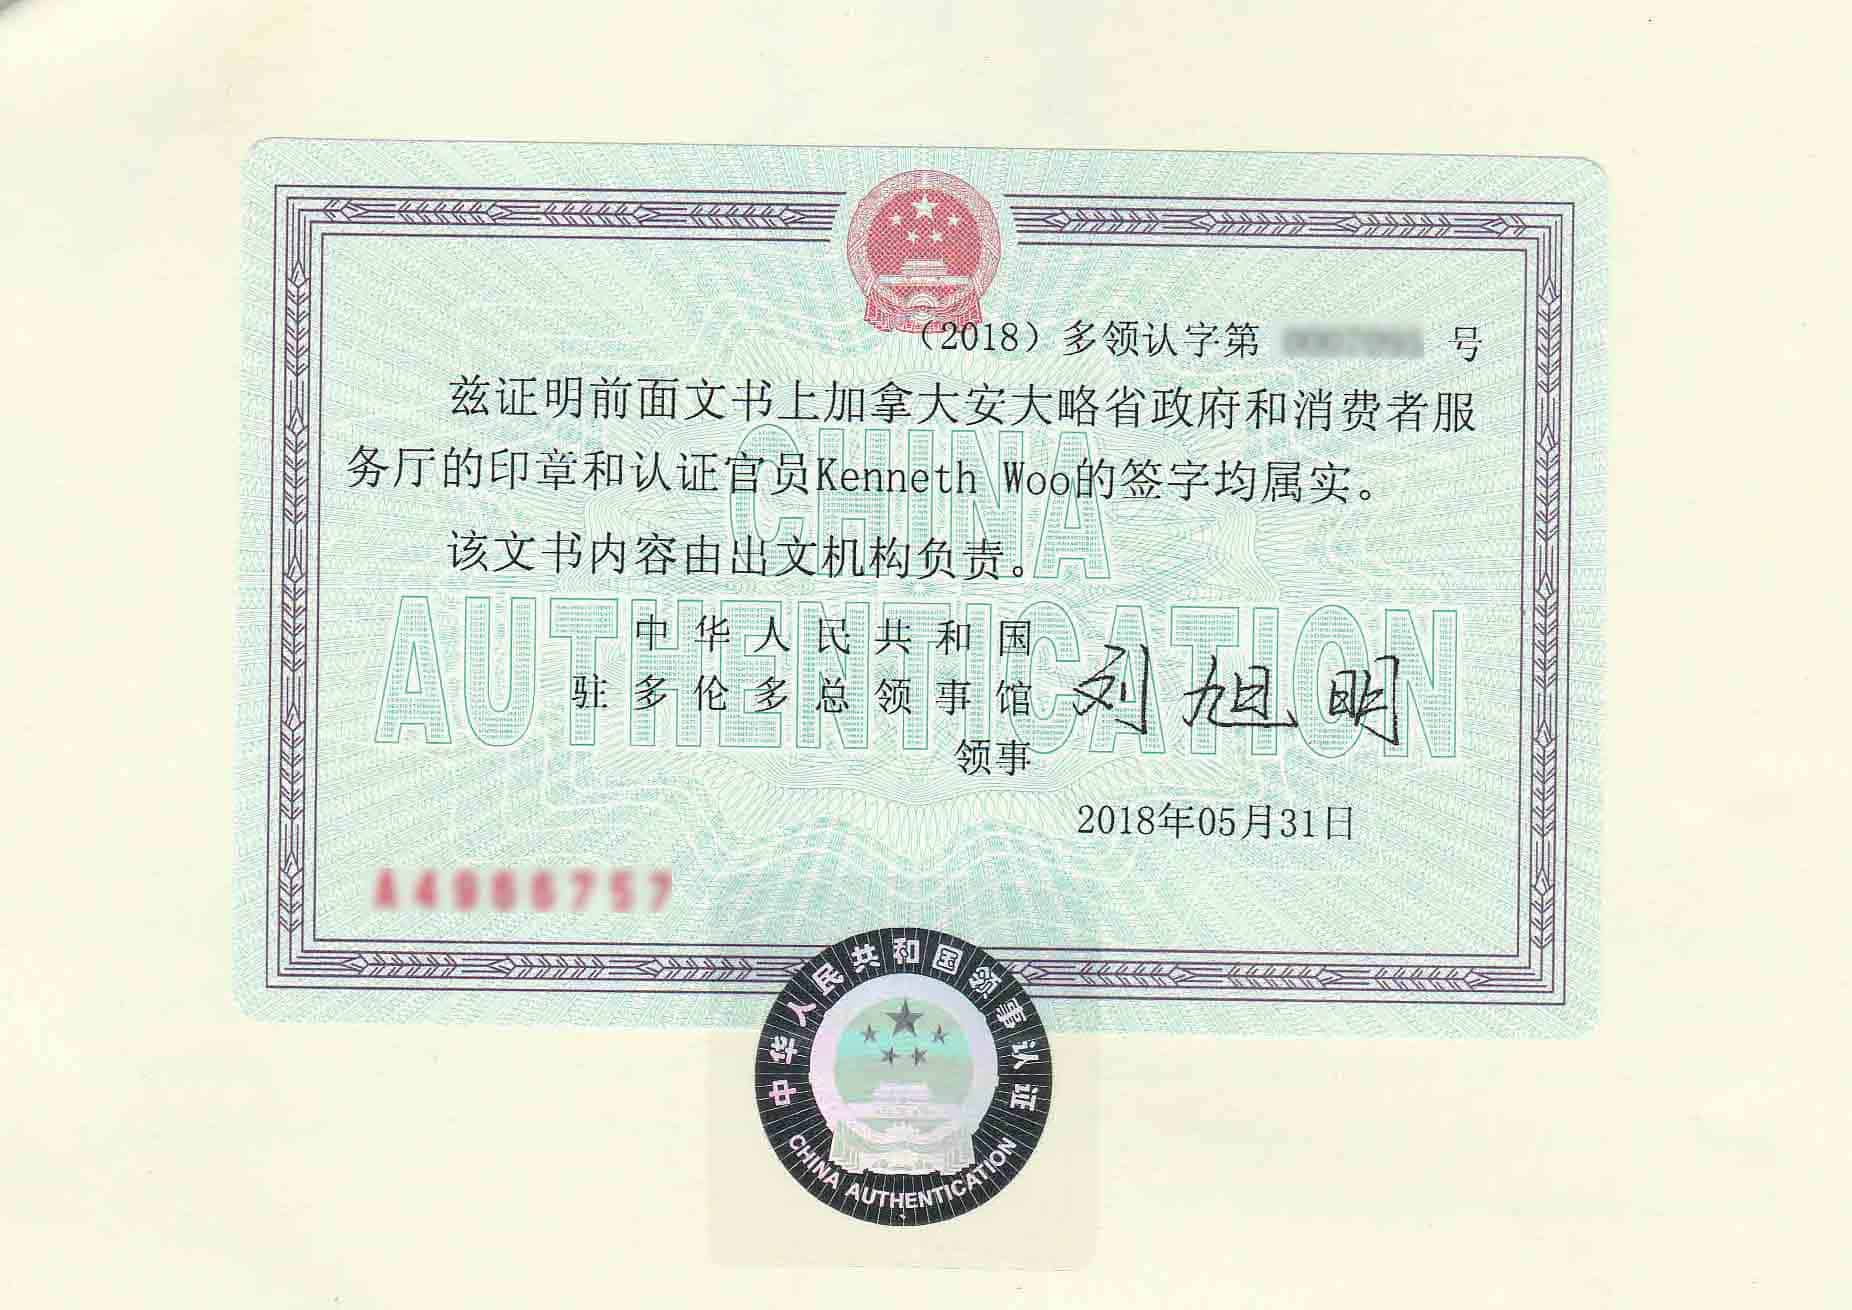 Sample China authentication stamp